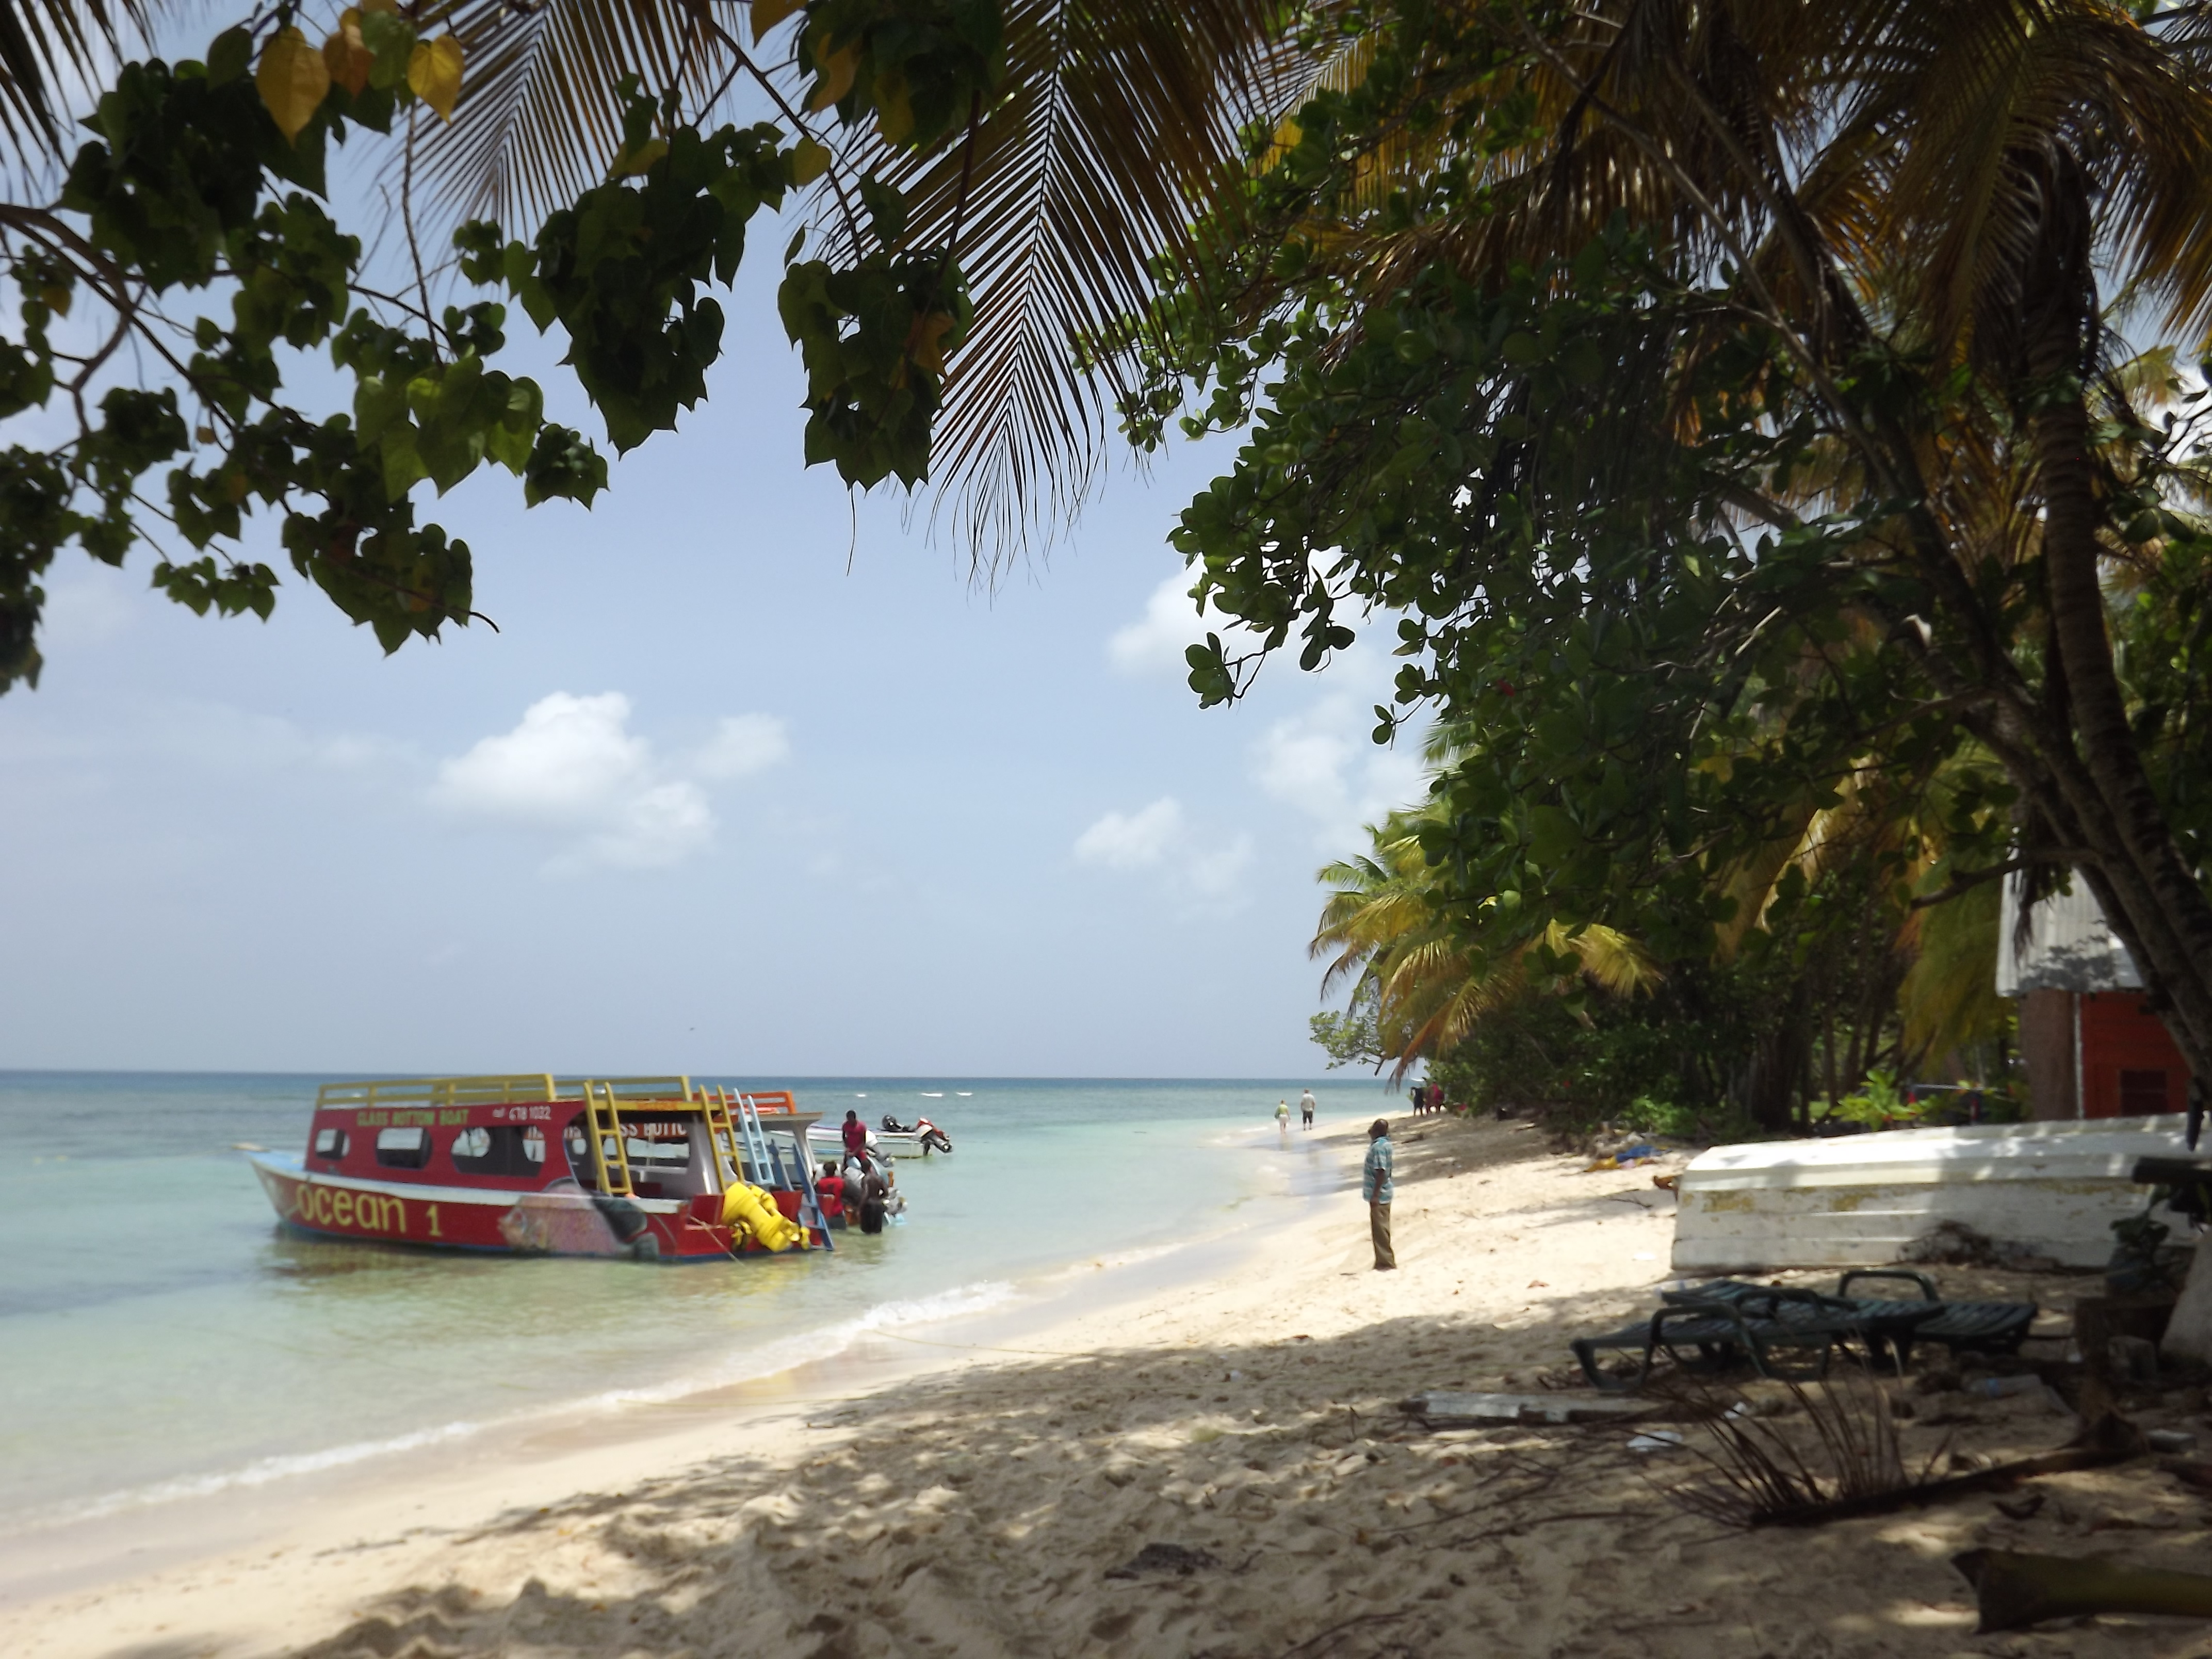 Travel blog: Amy Explores Exciting Places to Stay in Tobago – Part 2